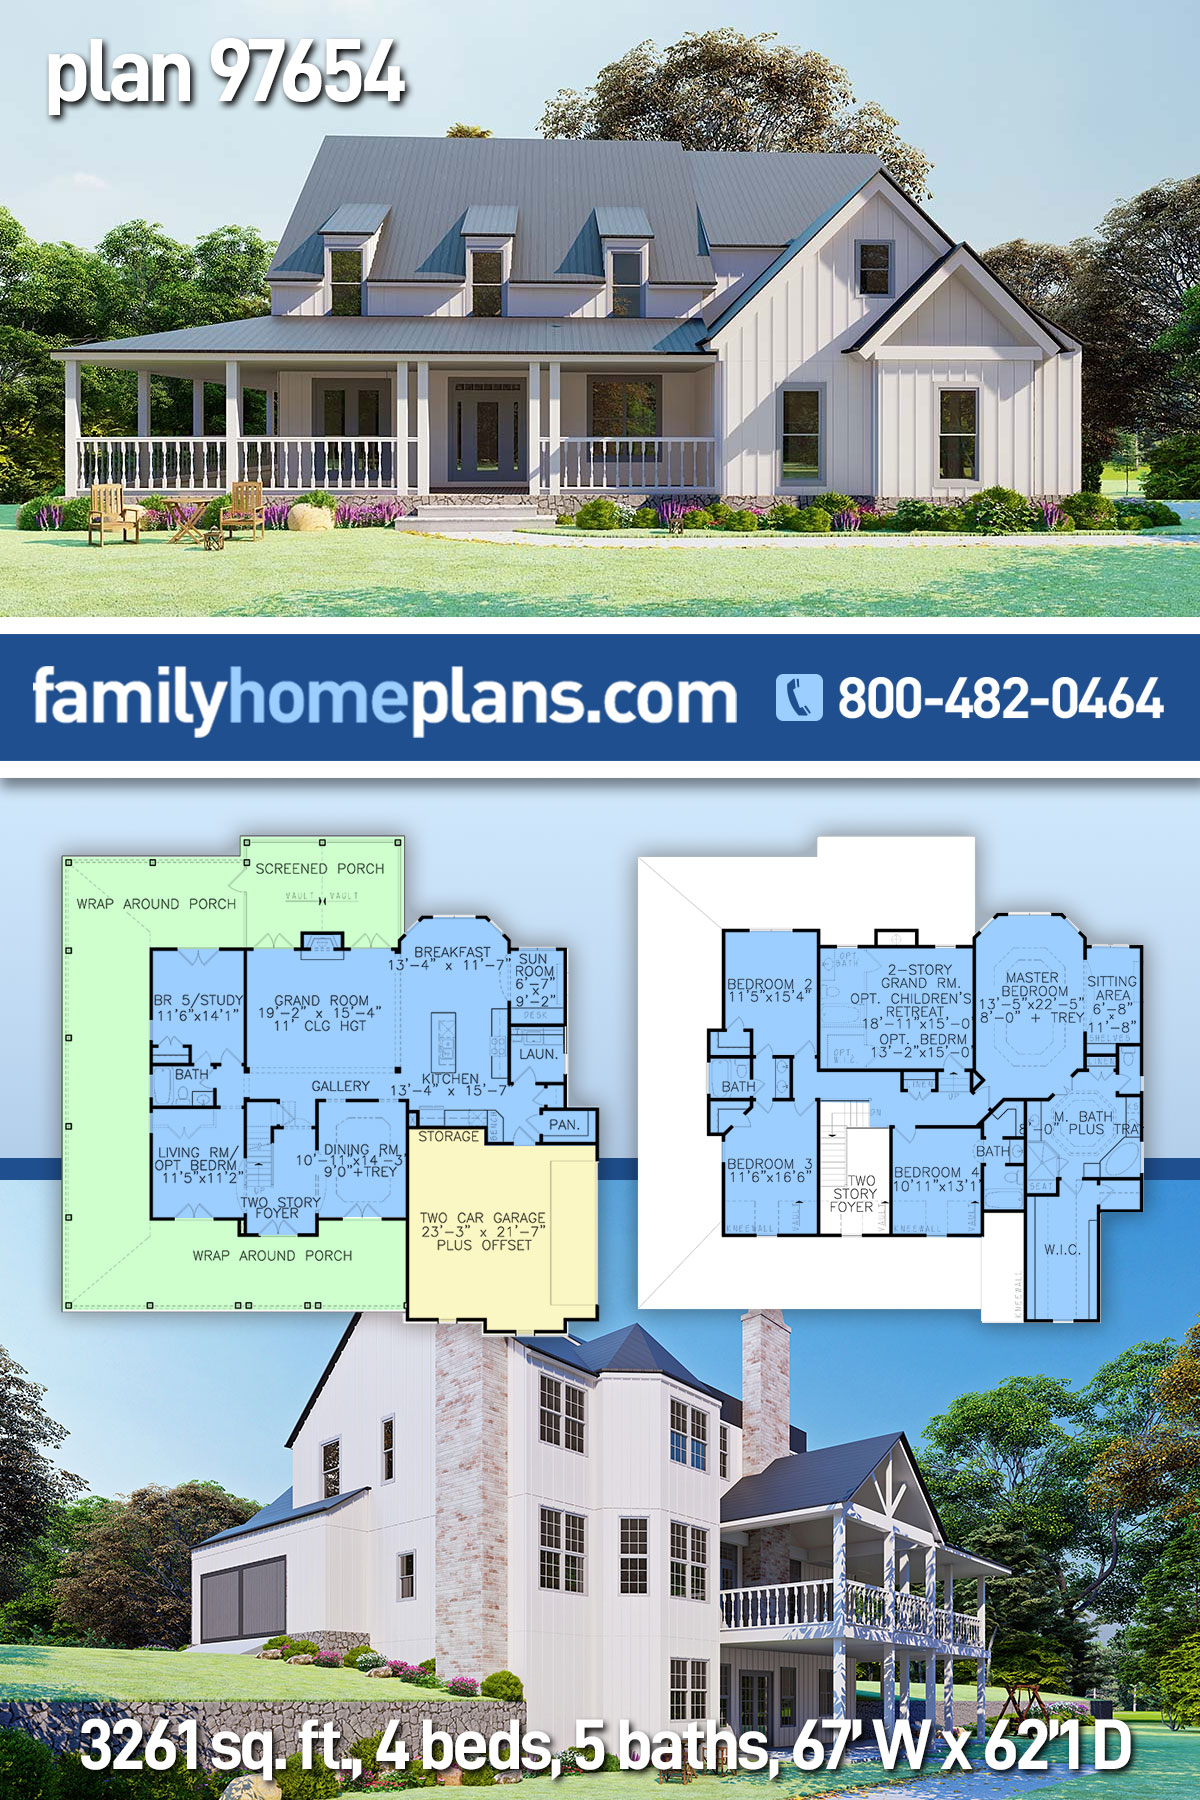 Country, Farmhouse, Ranch, Southern House Plan 97654 with 4 Beds, 5 Baths, 2 Car Garage